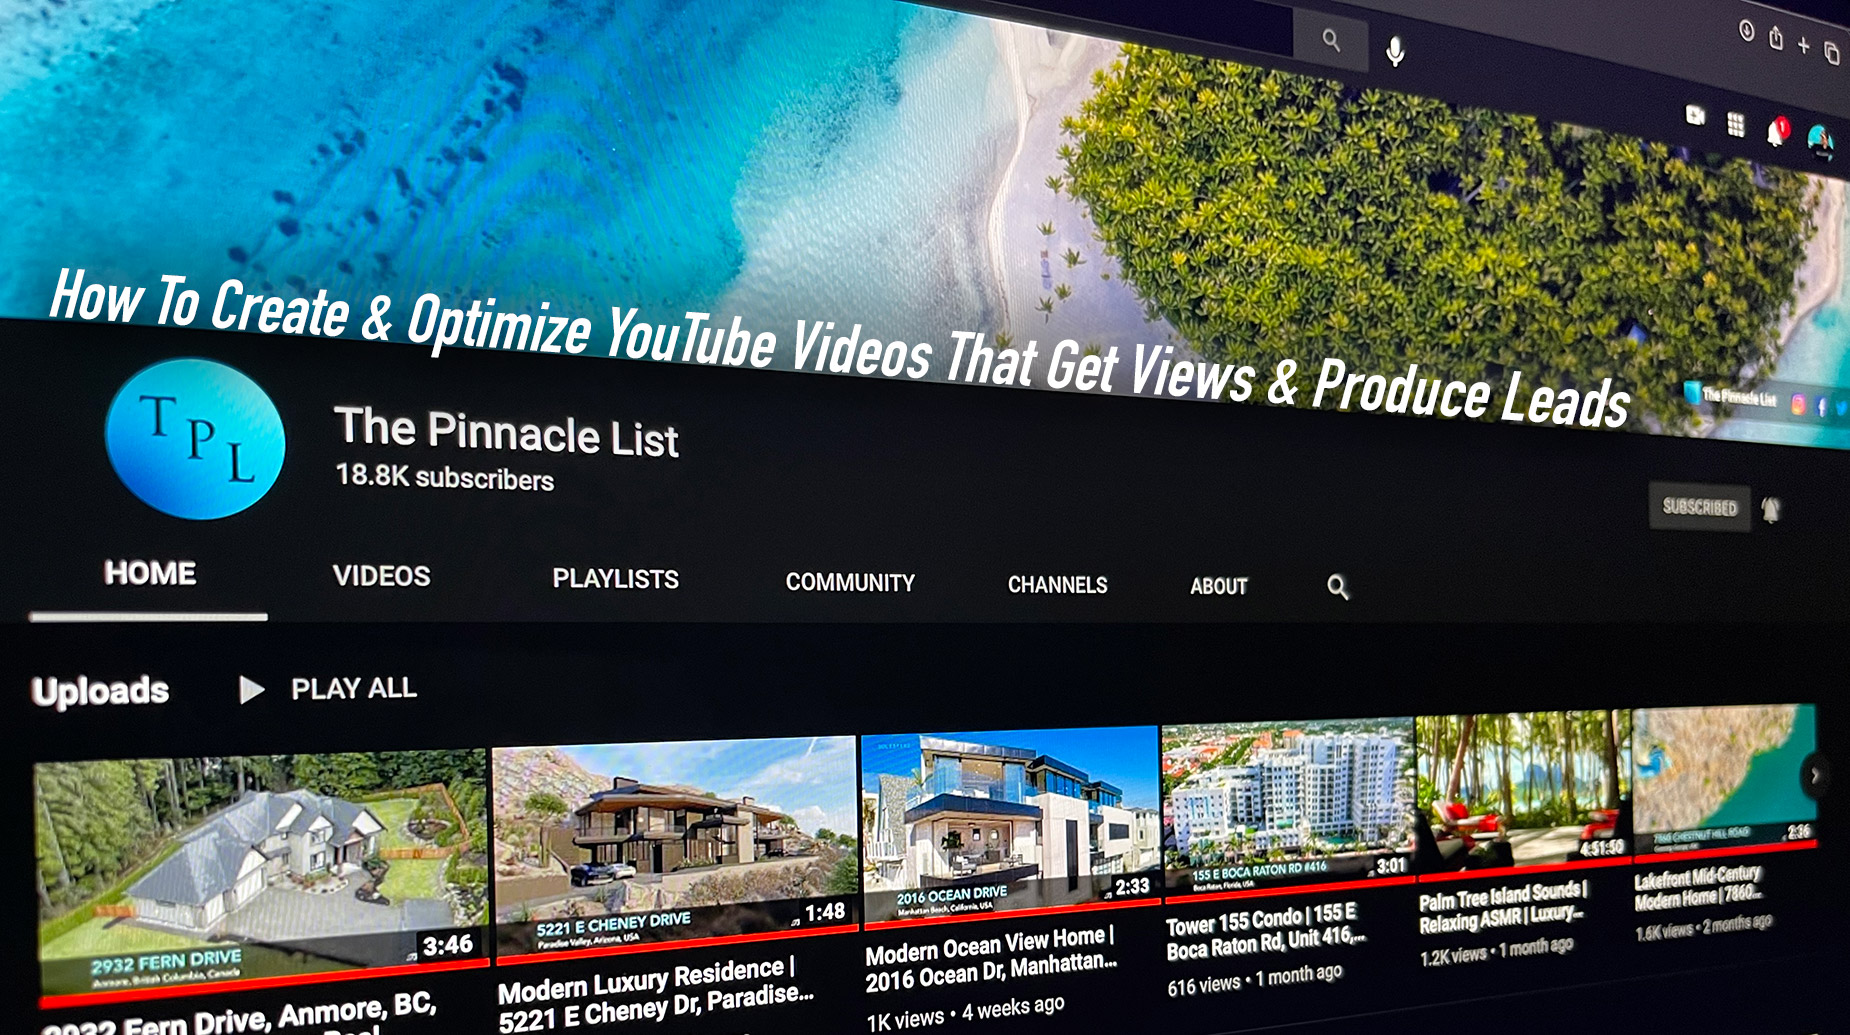 How To Create & Optimize YouTube Videos That Get Views & Produce Leads